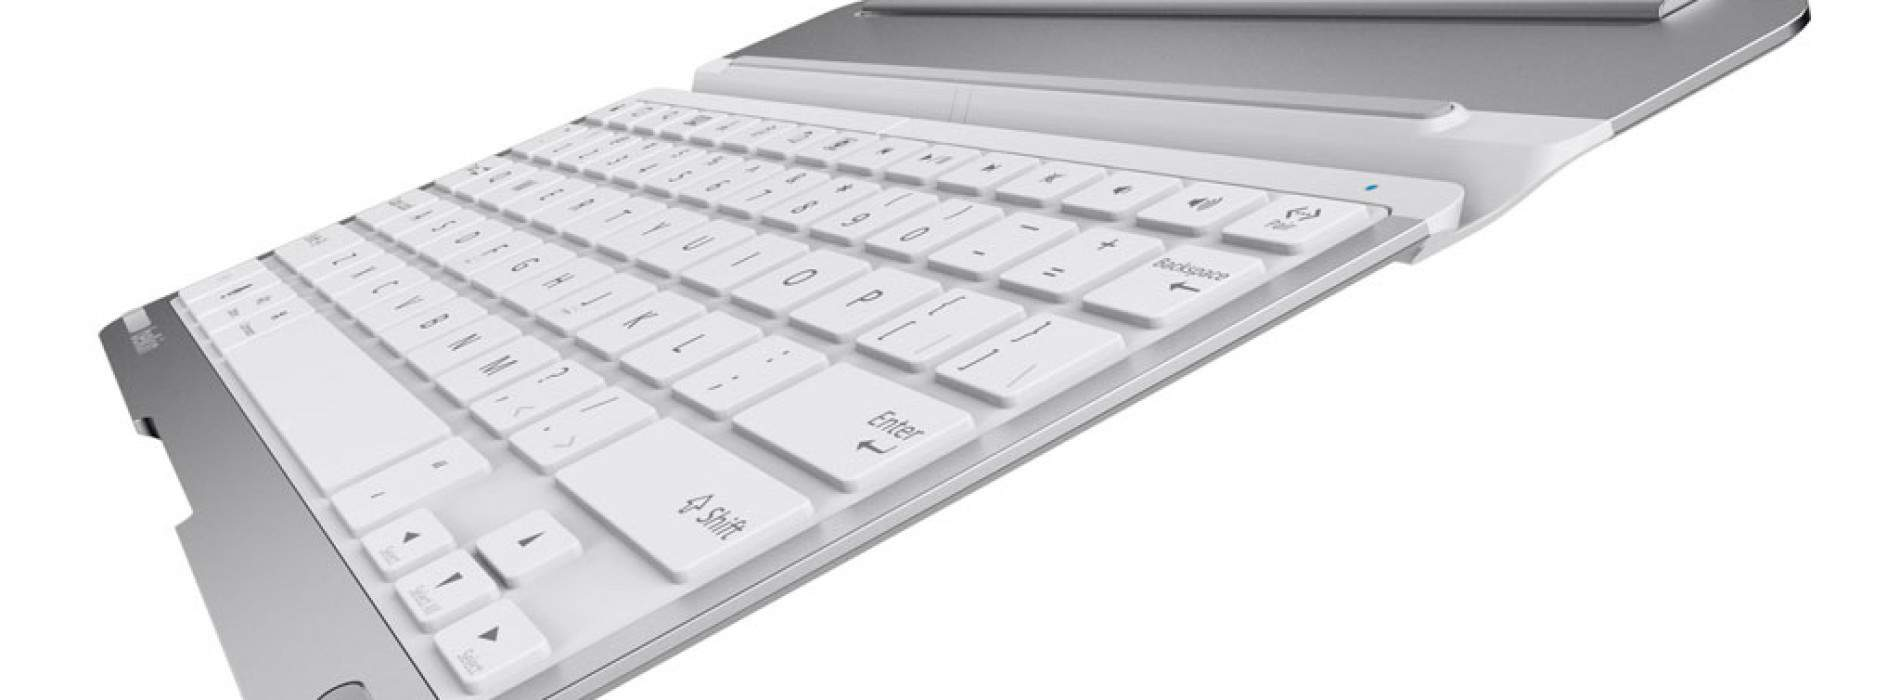 Belkin QODE Thin Type: El teclado del iPad Air